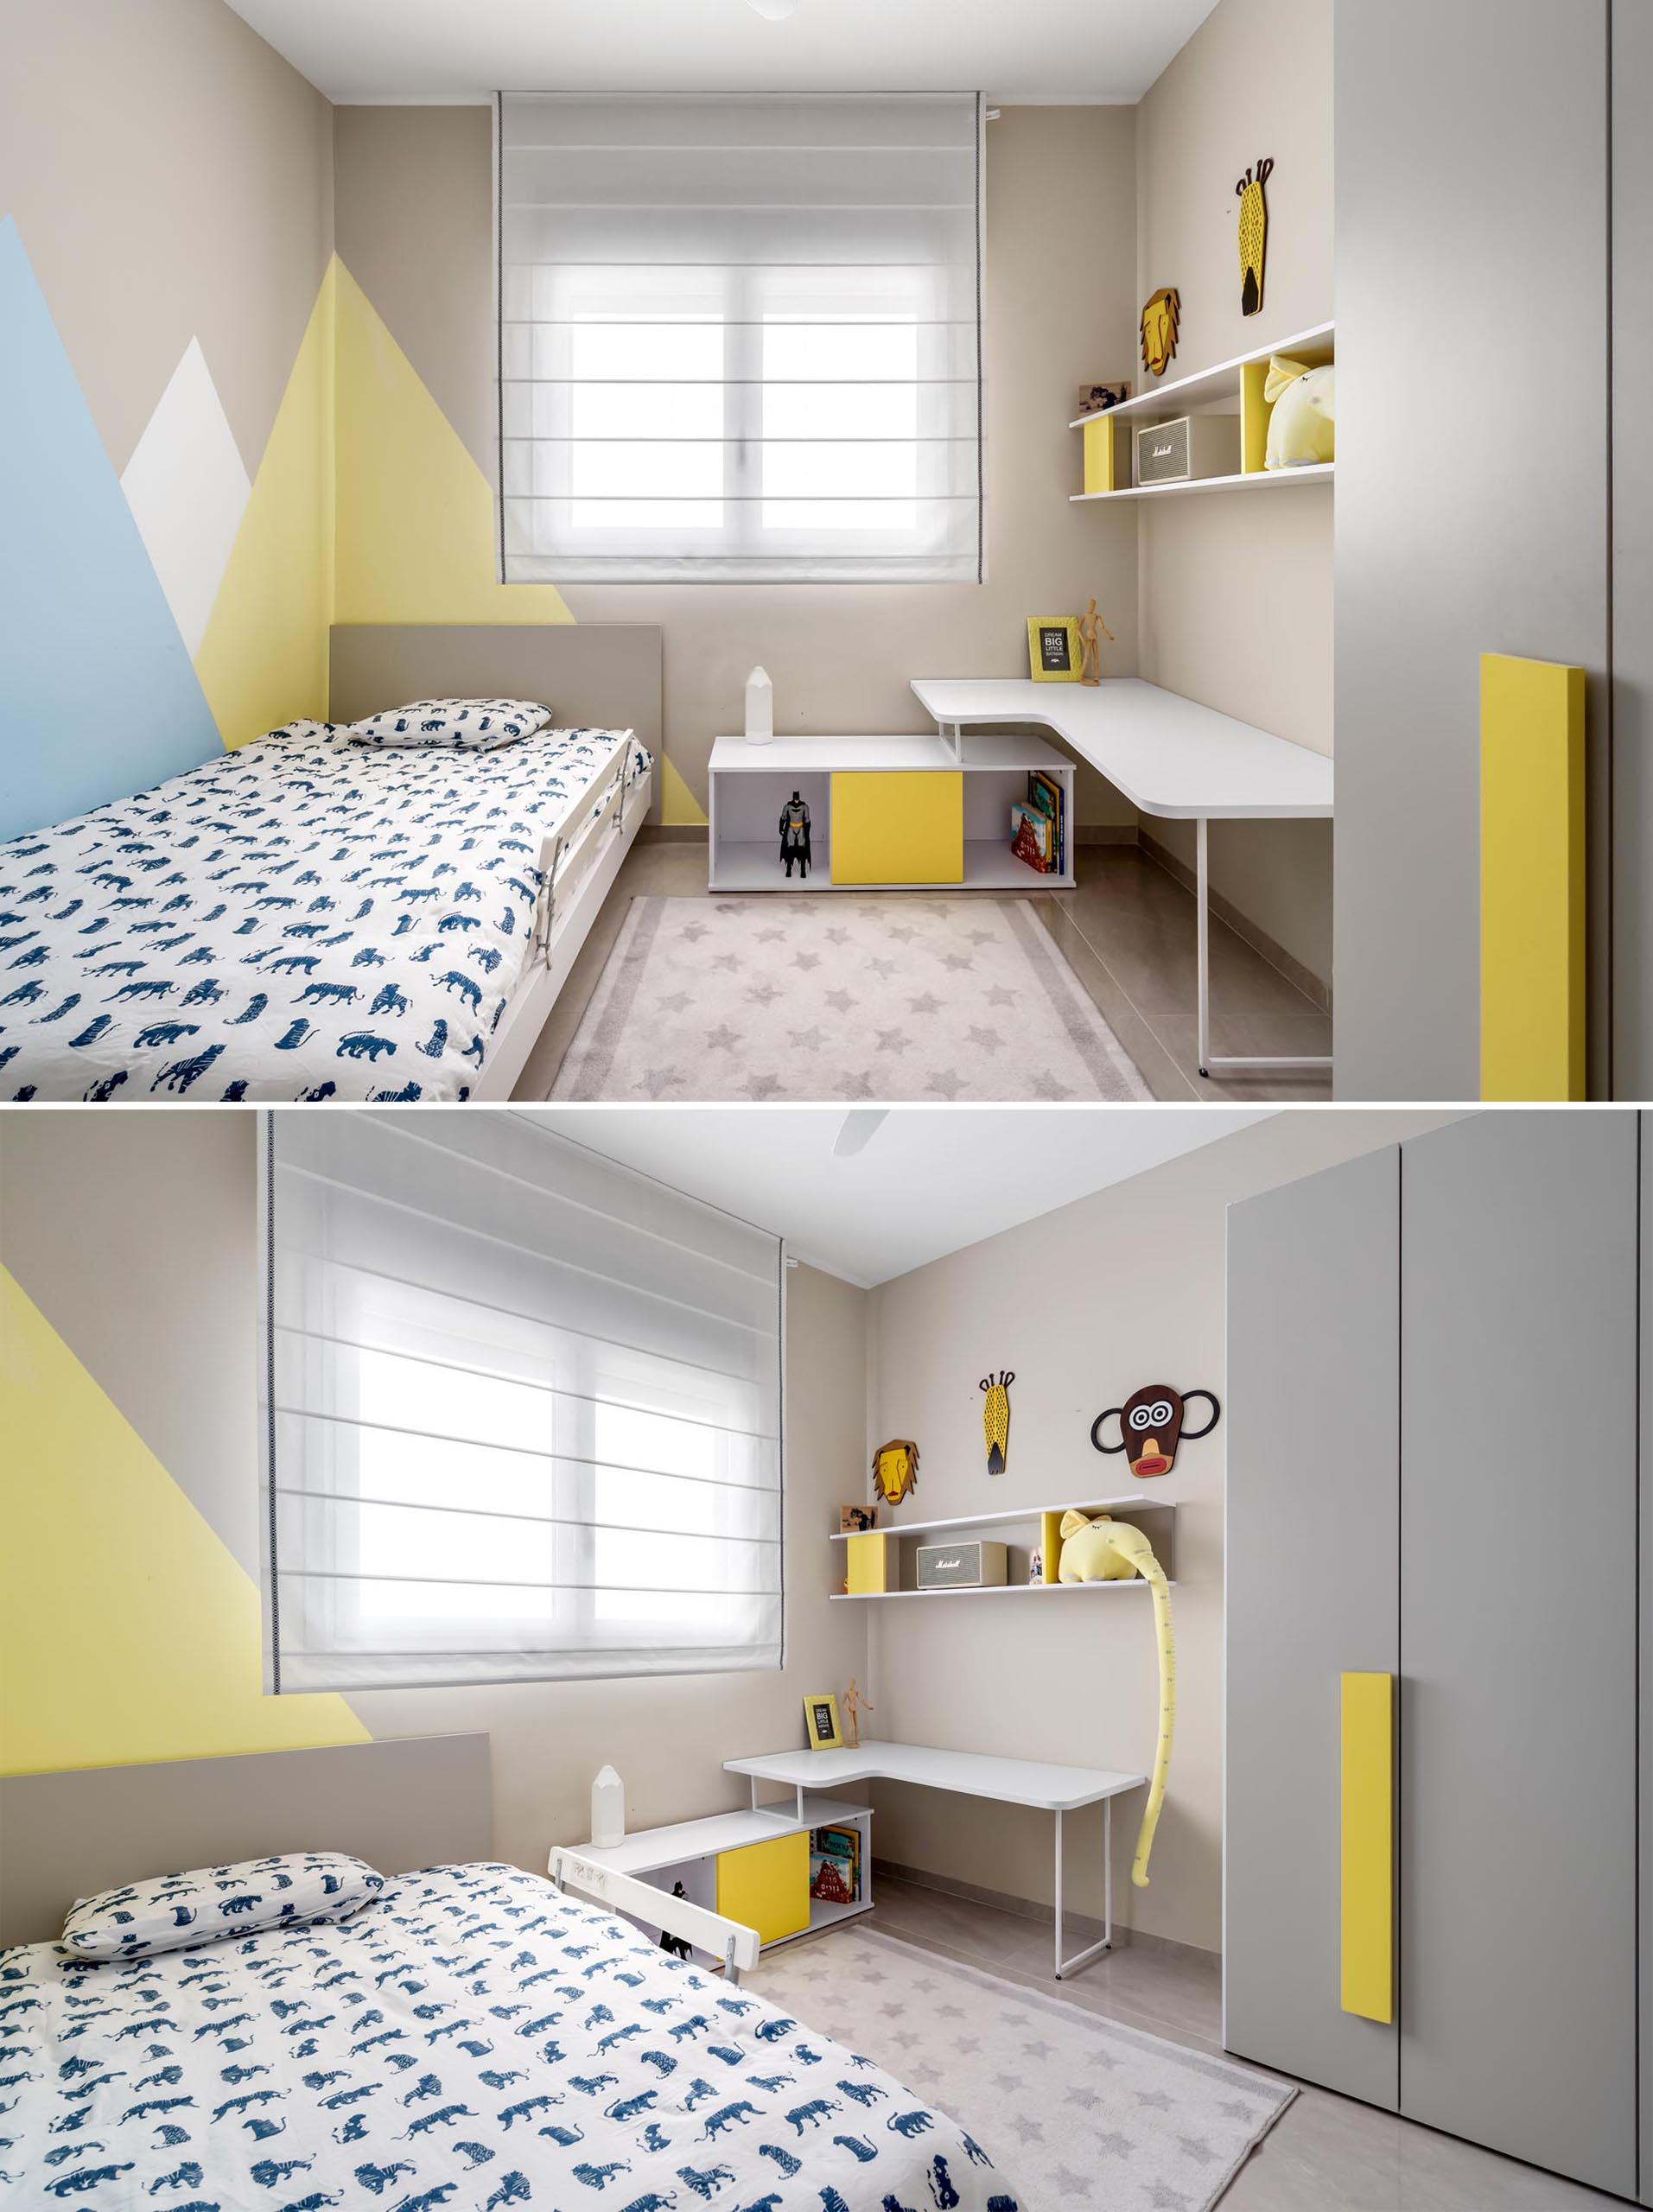 In this kid's bedroom, soft pops of yellow and blue brighten up neutral colored walls.